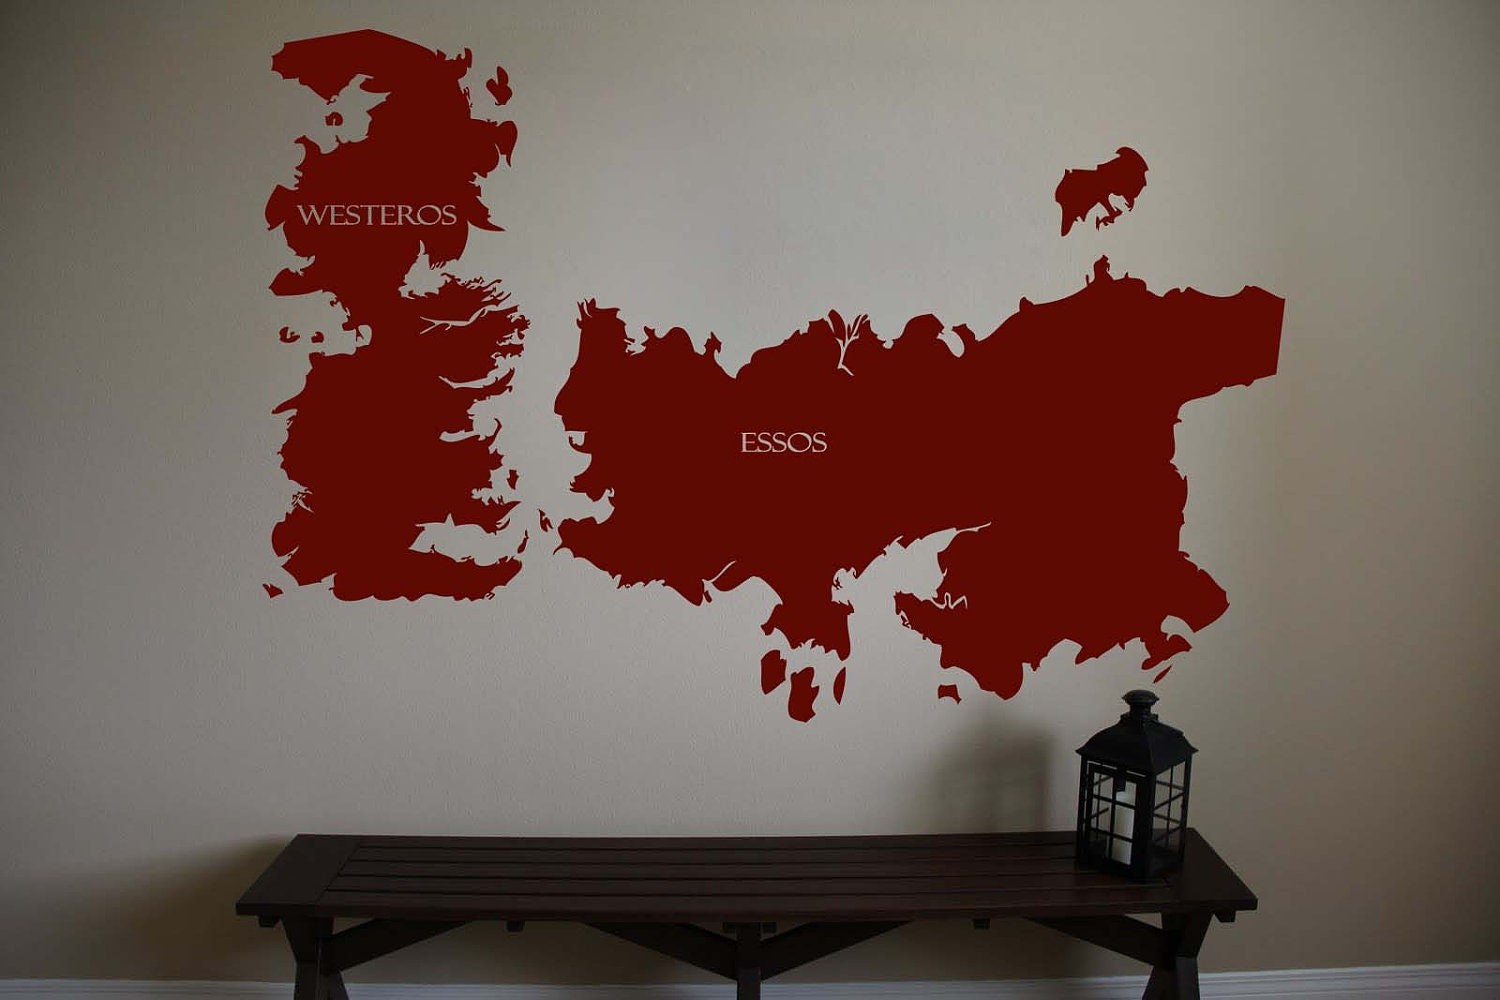 Game of thrones world map westeros essos by for Decoration murale game of thrones